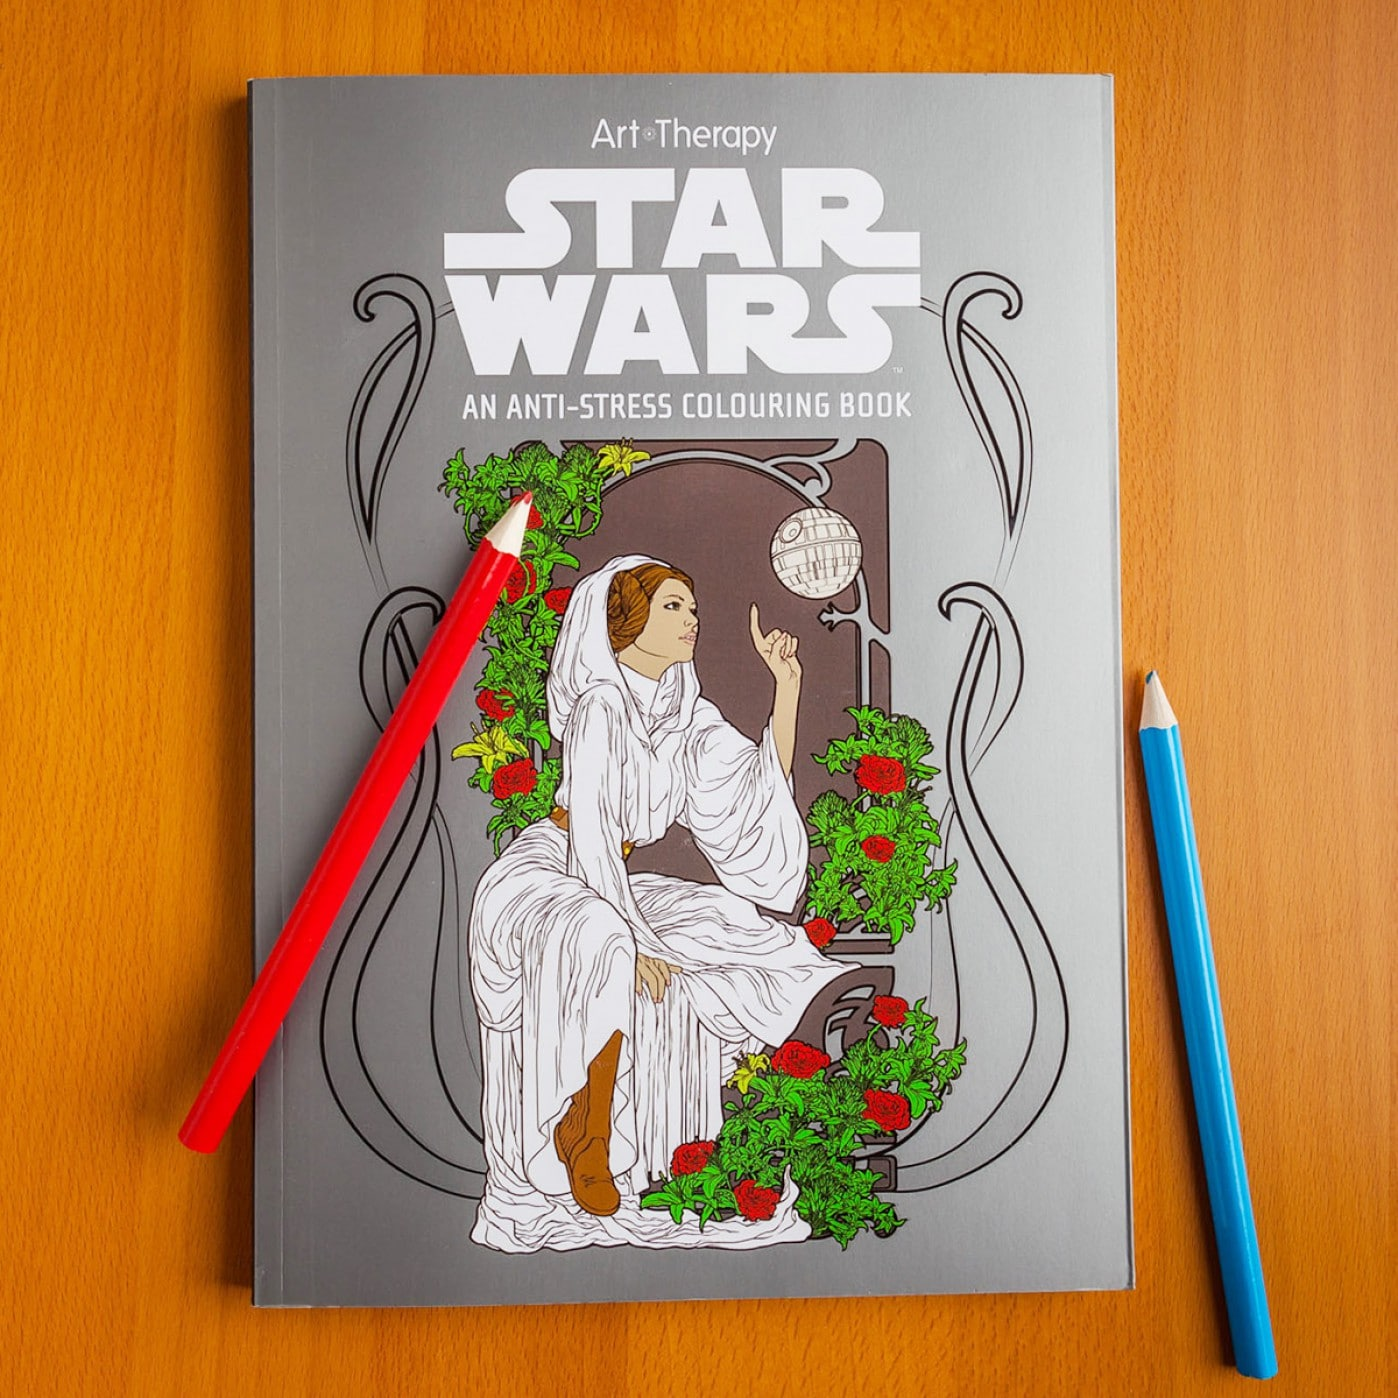 Cahier de coloriages Star Wars Therapy